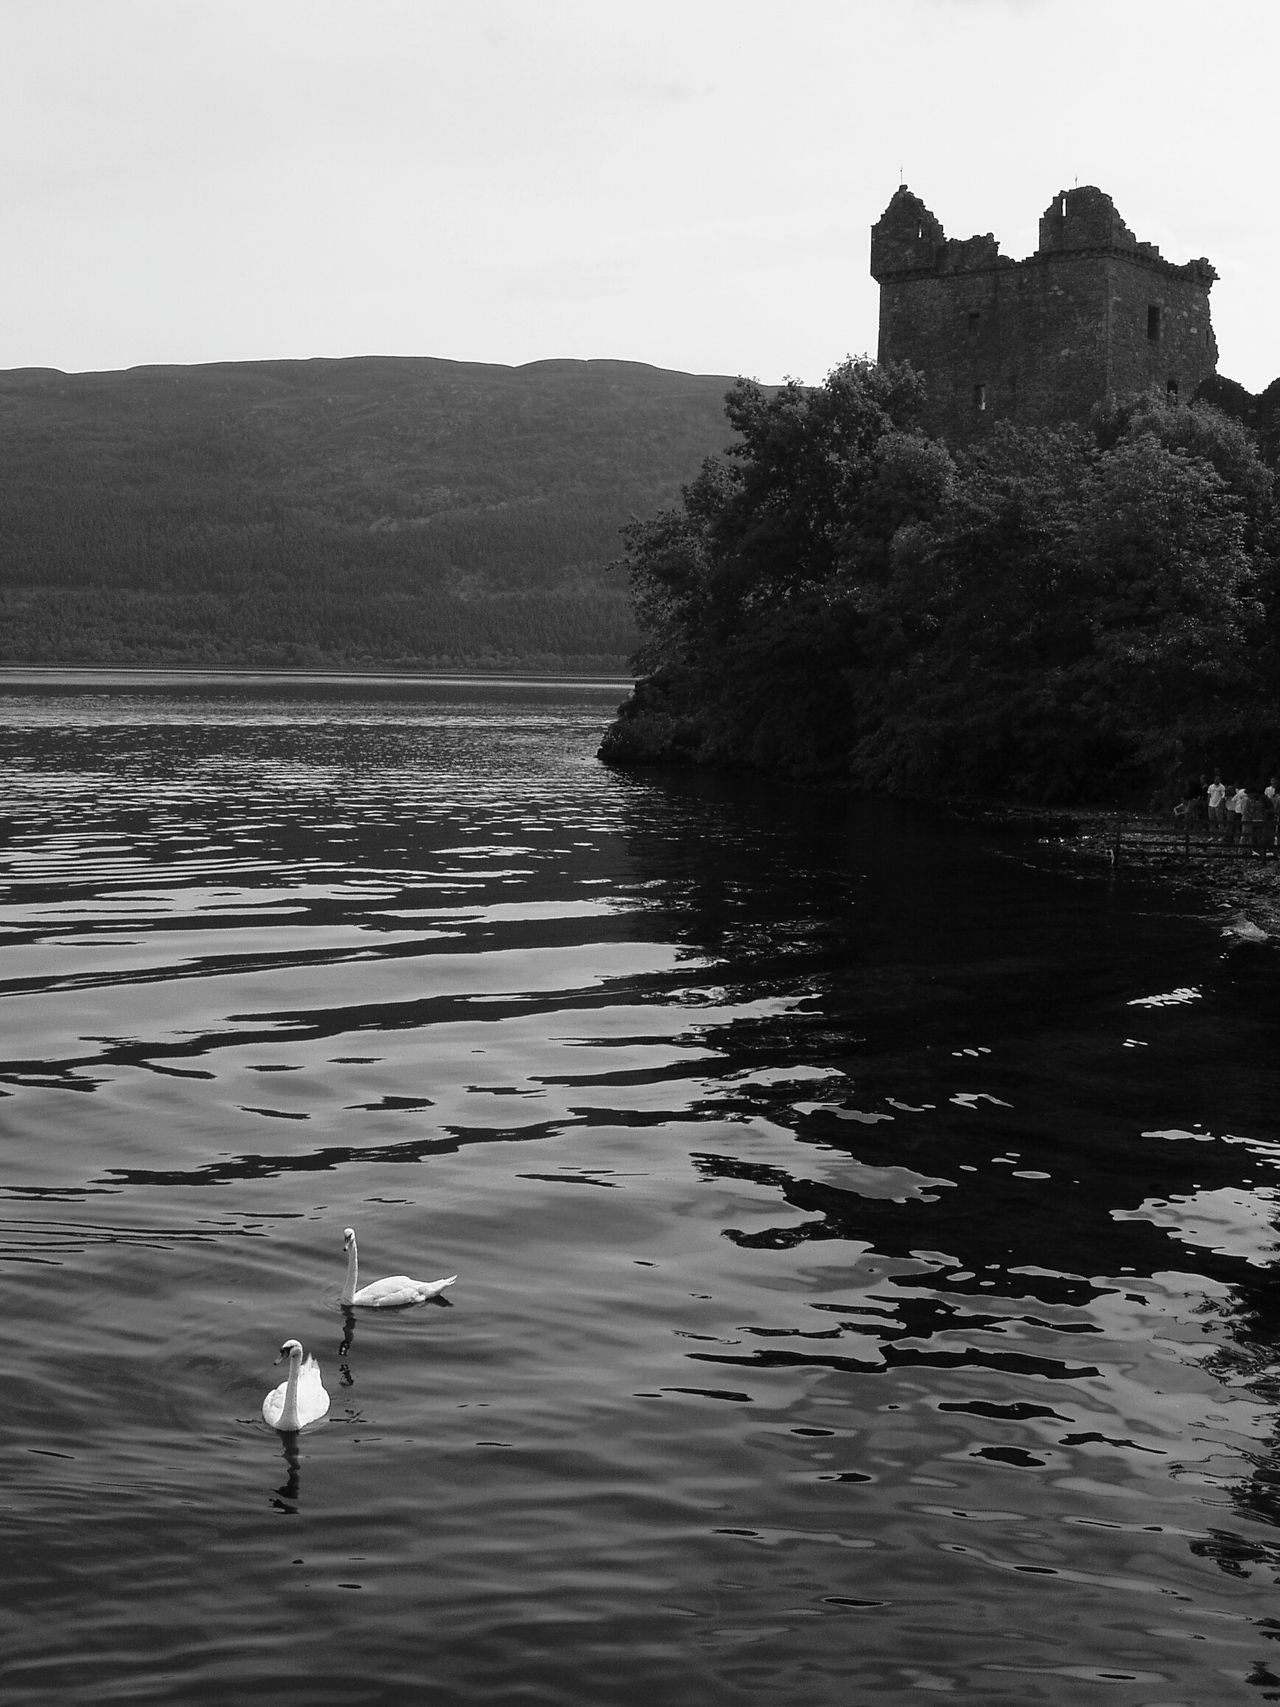 Learn And Shoot: Balancing Elements Learn & Shoot: Balancing Elements Blackandwhite Photography Black And White Loch Ness UrquhartCastle Urquhart Castle Swans Reflections In The Water Reflection_collection Relaxing Travel Catch The Moment Old Castle Castle Scotlandlover Scotland The Great Outdoors - 2016 EyeEm Awards